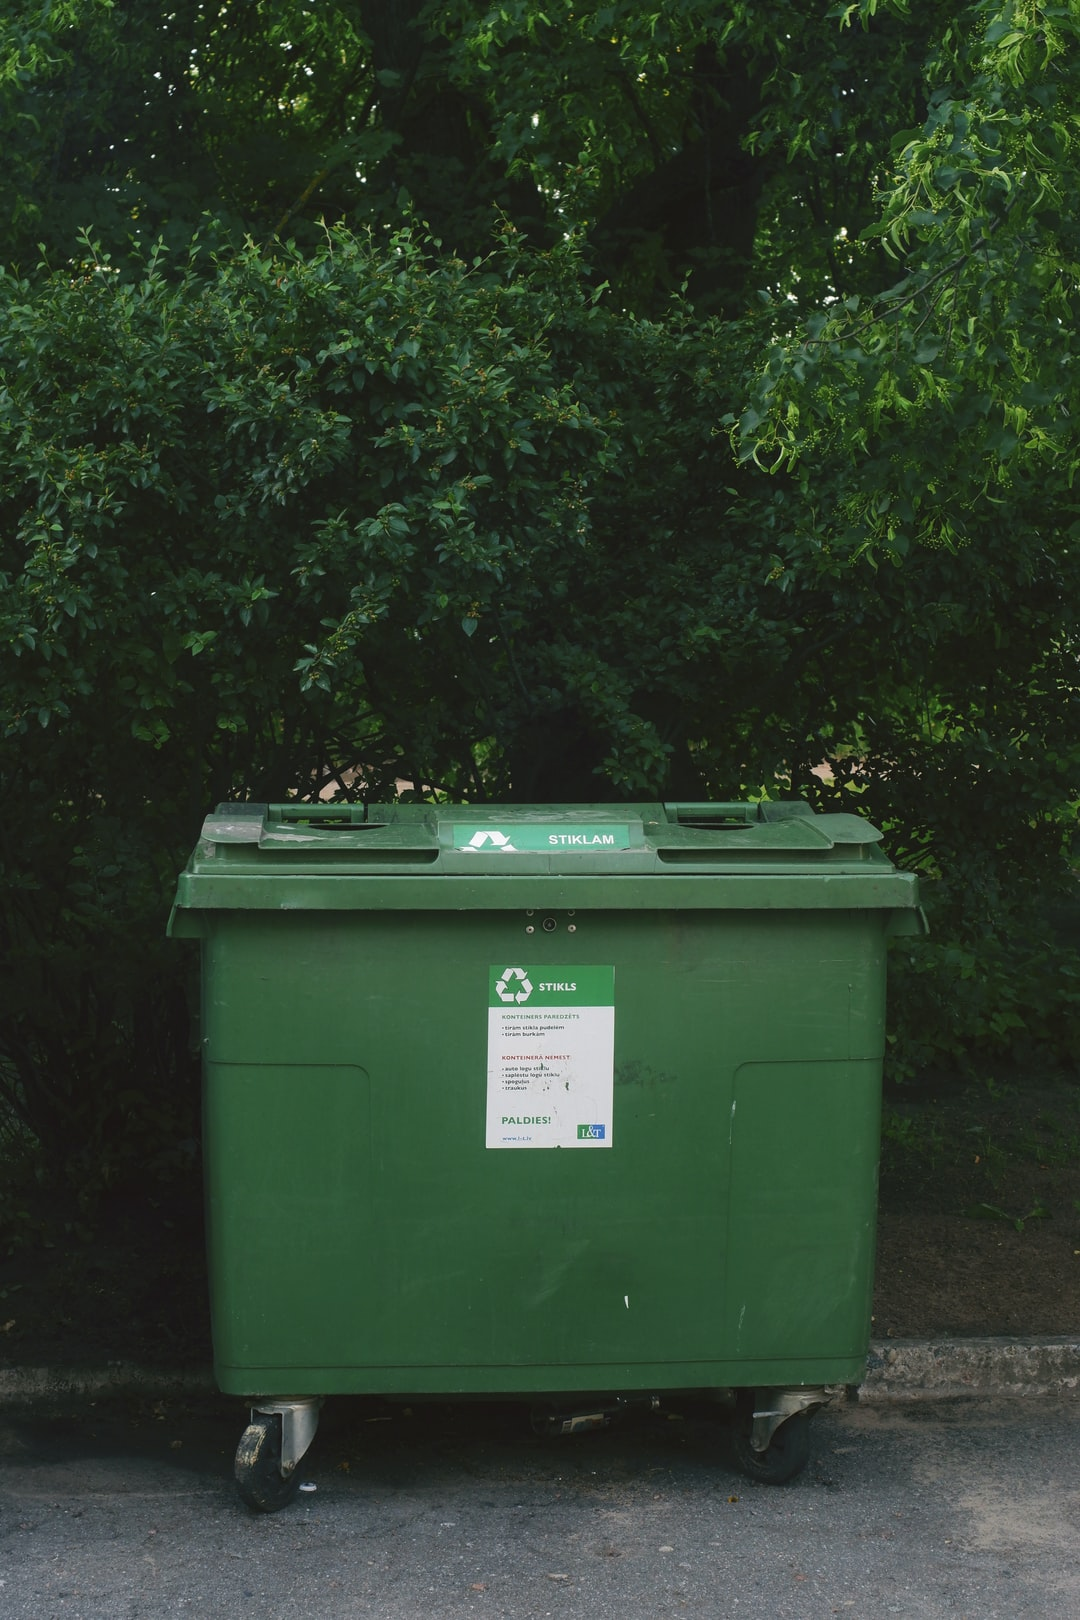 Curbside waste trash sorting container for sorting waste to aid pollution and aid sustainable environment development and plastic pollution management.